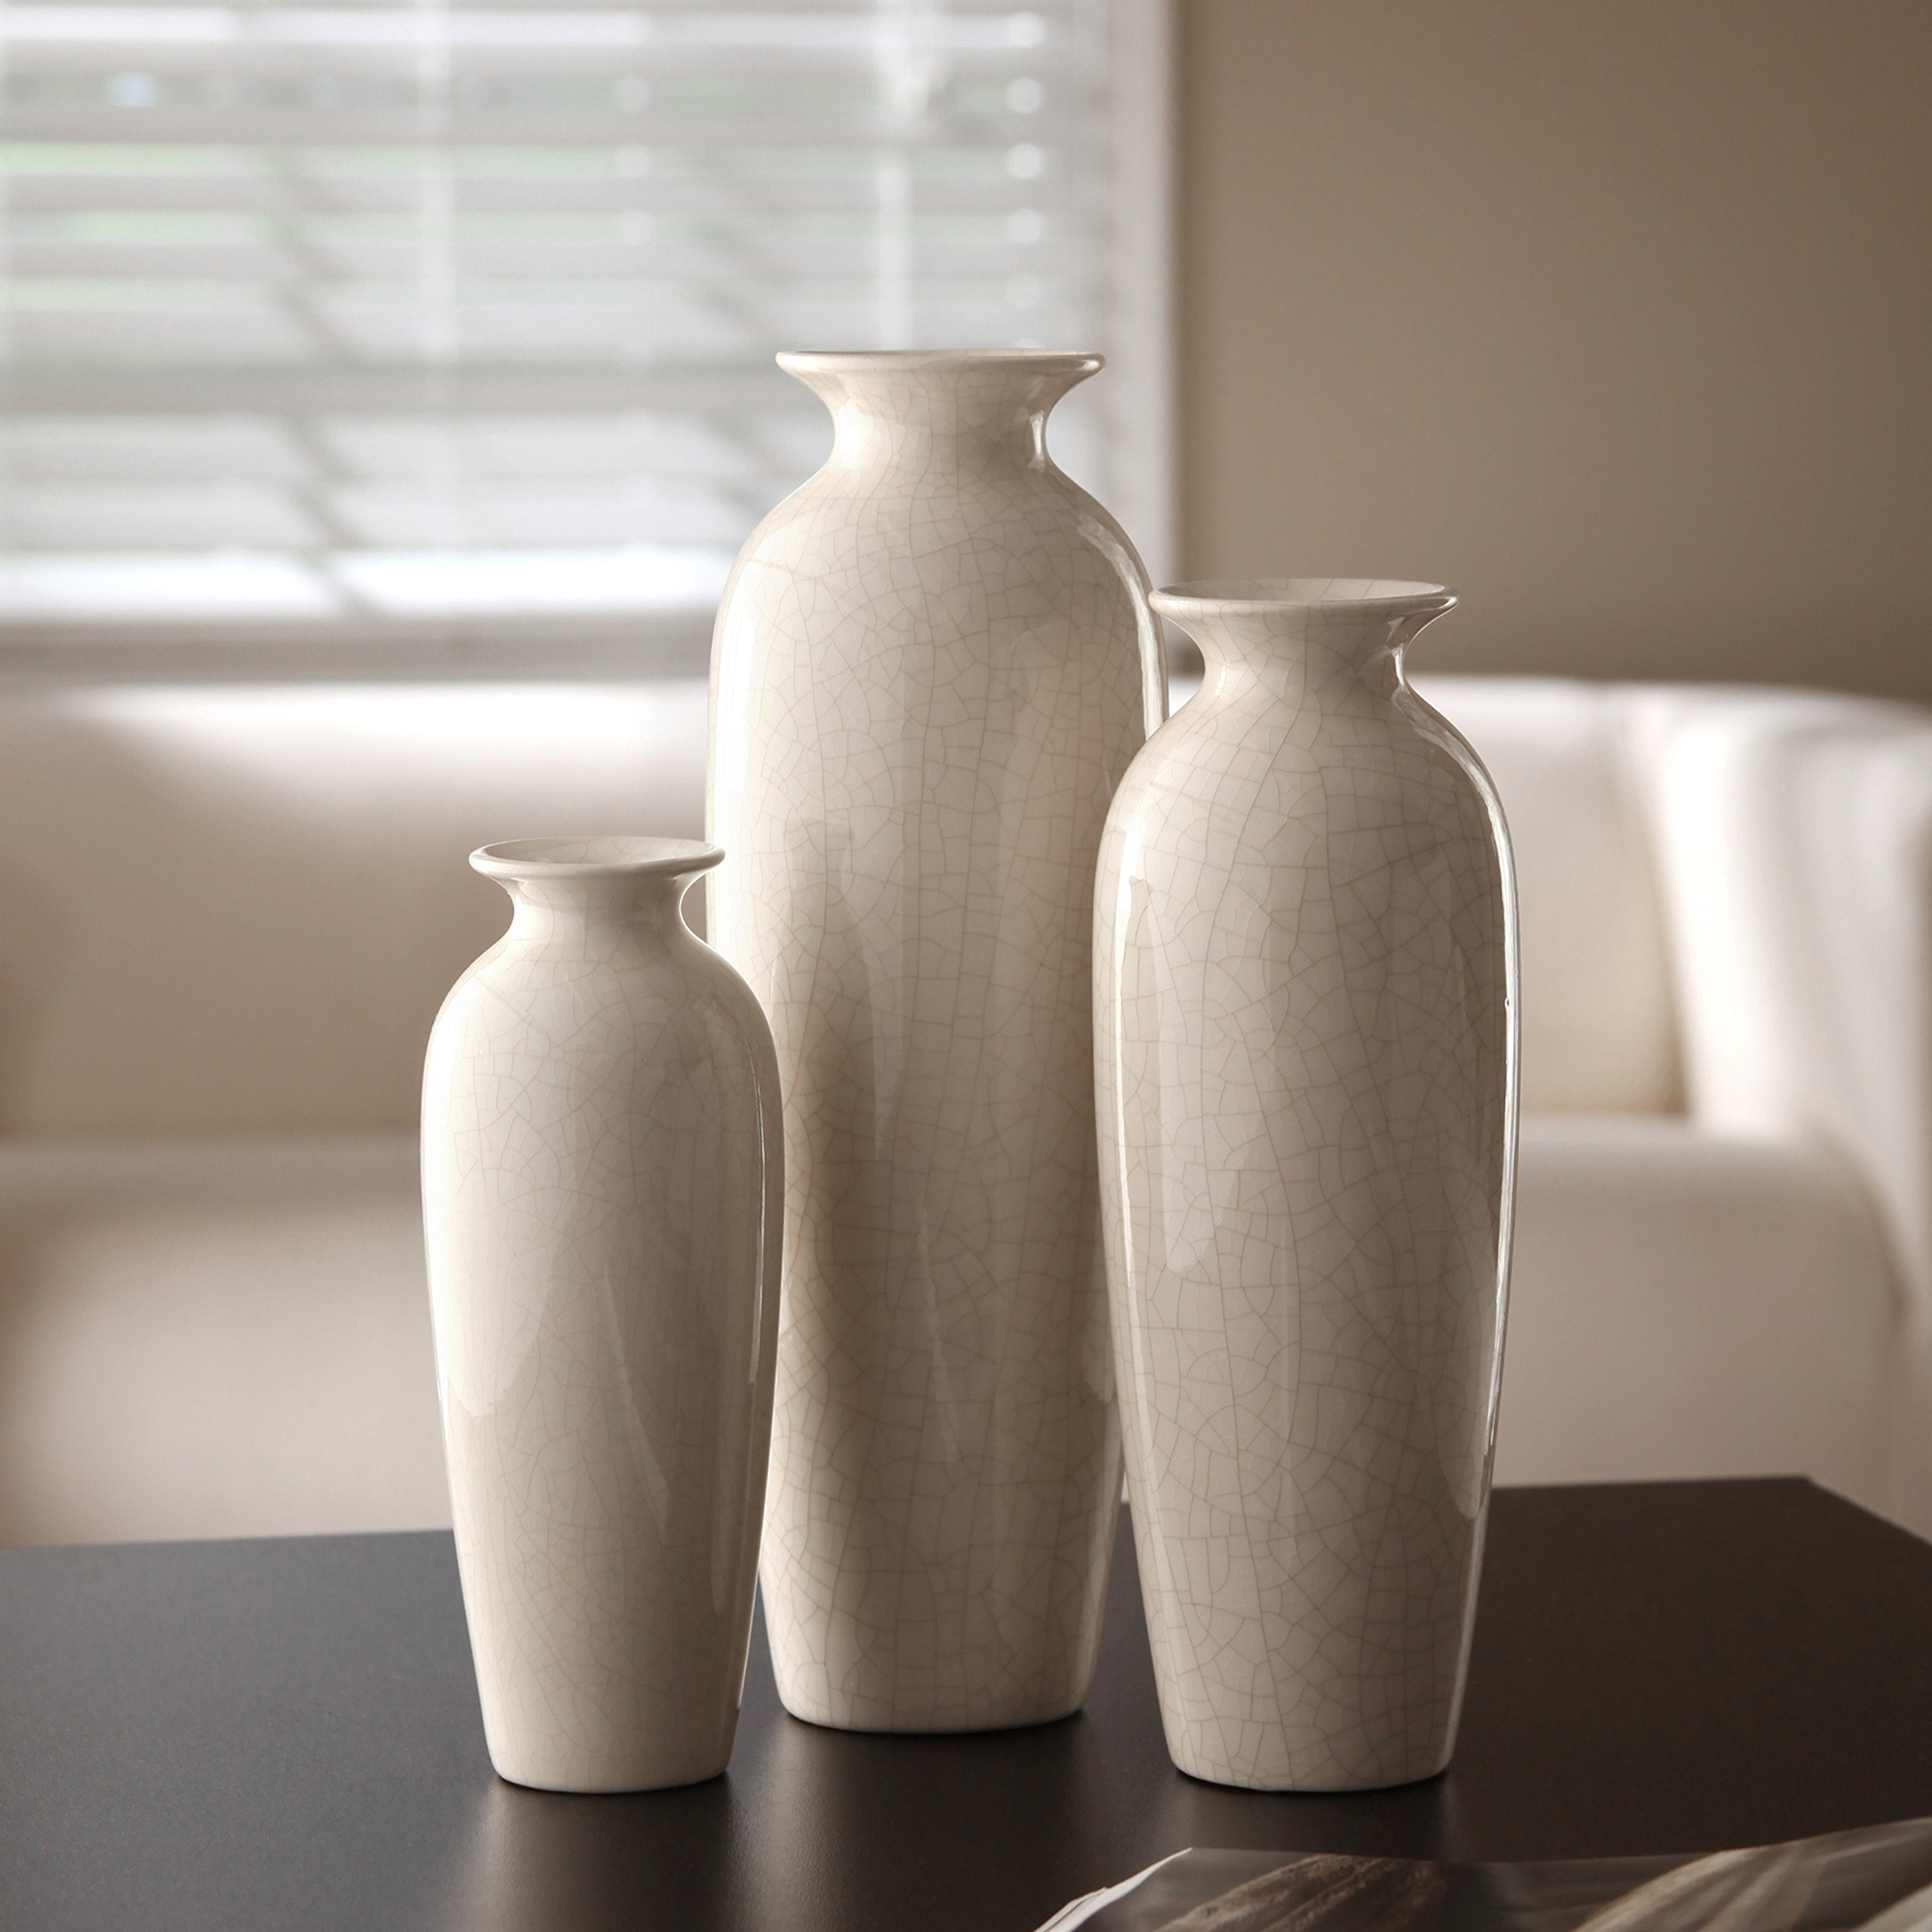 Vases Home Decor: Ceramic Vases Home Decor Crackle Ivory Vase Set Of 3